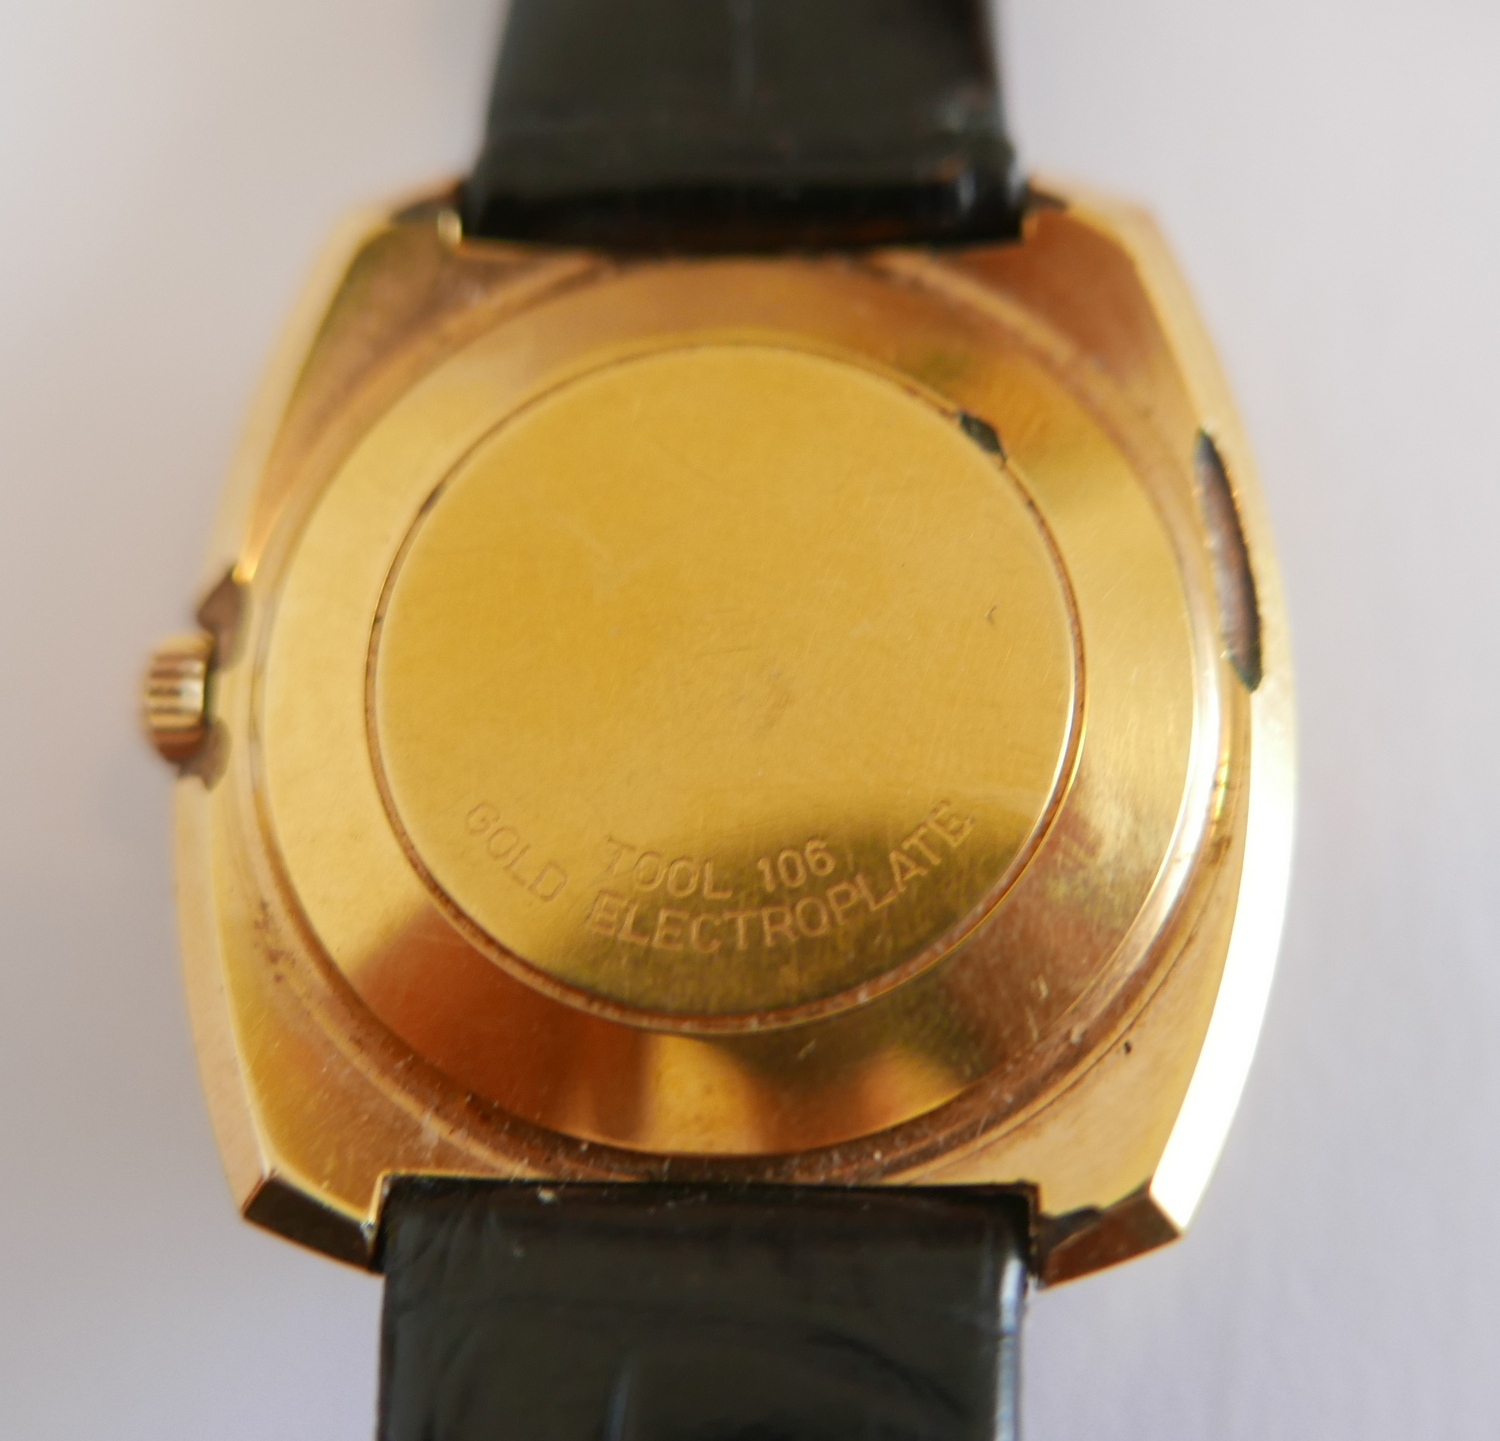 Lot 73 - Vintage Omega Automatic Gold Plated De Ville Gents Wristwatch.